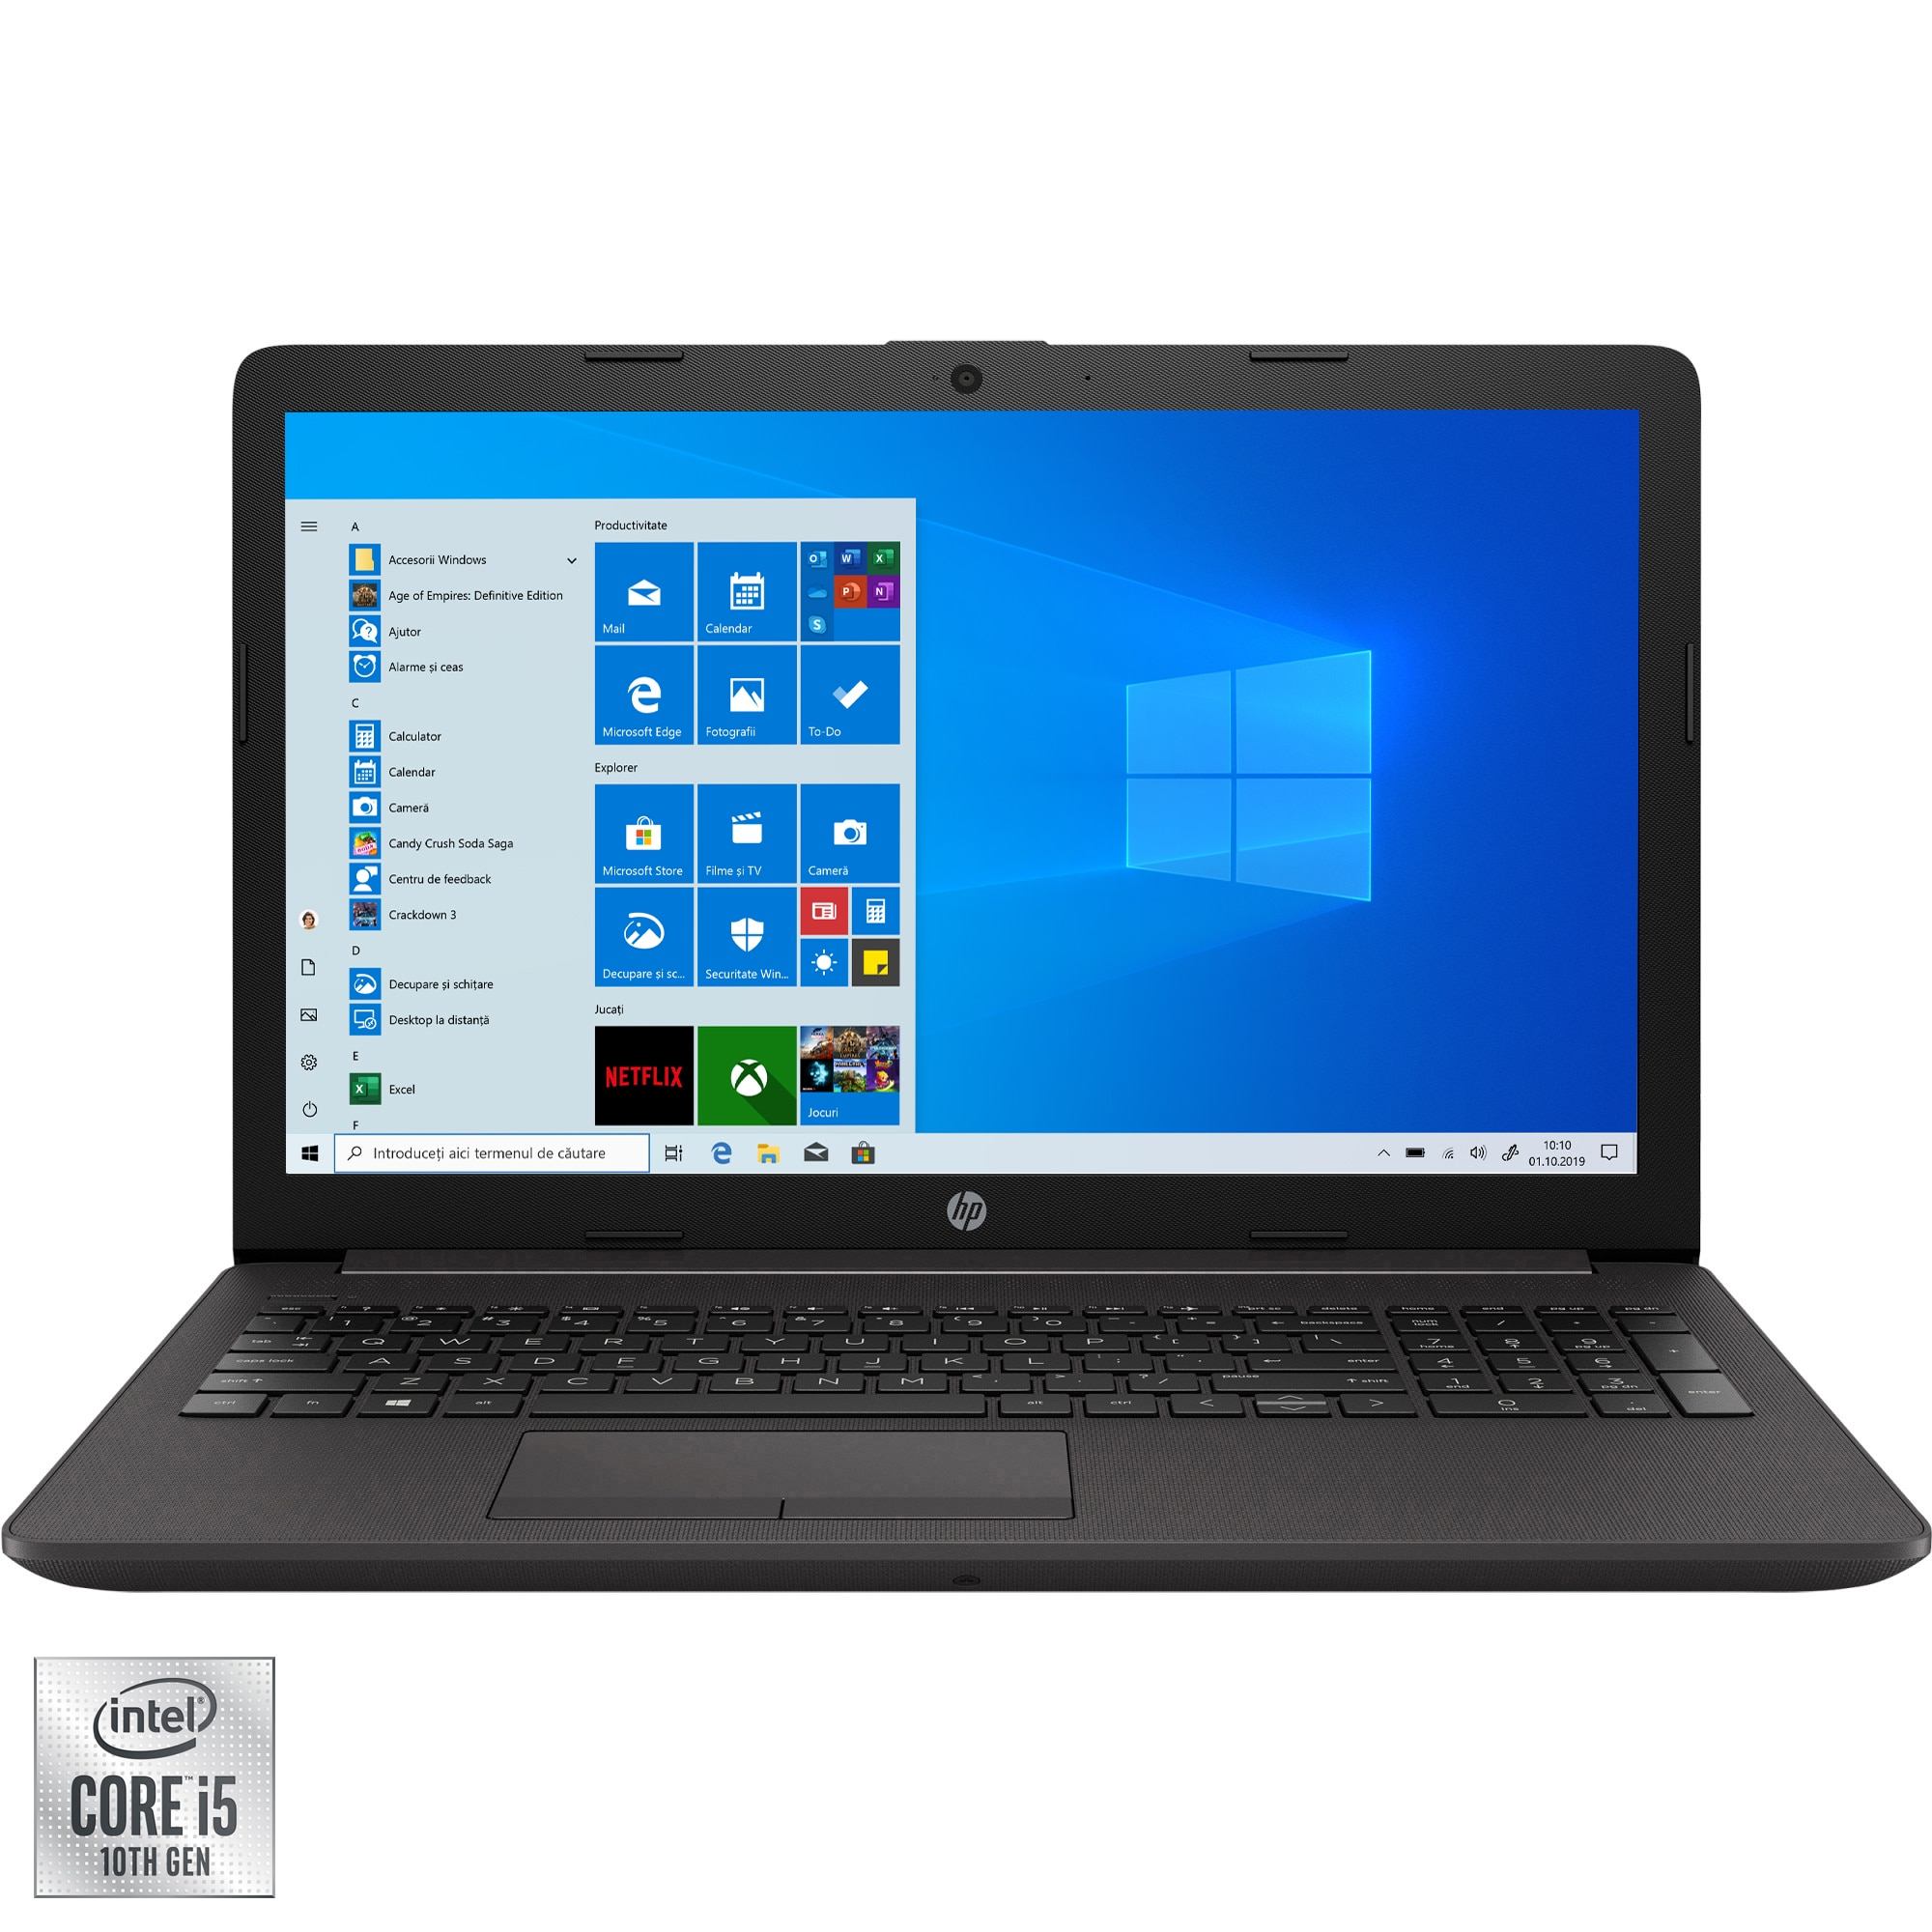 "Fotografie Laptop HP 250 G7 cu procesor Intel Core i5-1035G1 pana la 3.60 GHz, 15.6"", Full HD, 8GB, 256GB SSD, Intel UHD Graphics, Windows 10 Pro, Dark Ash Silver"